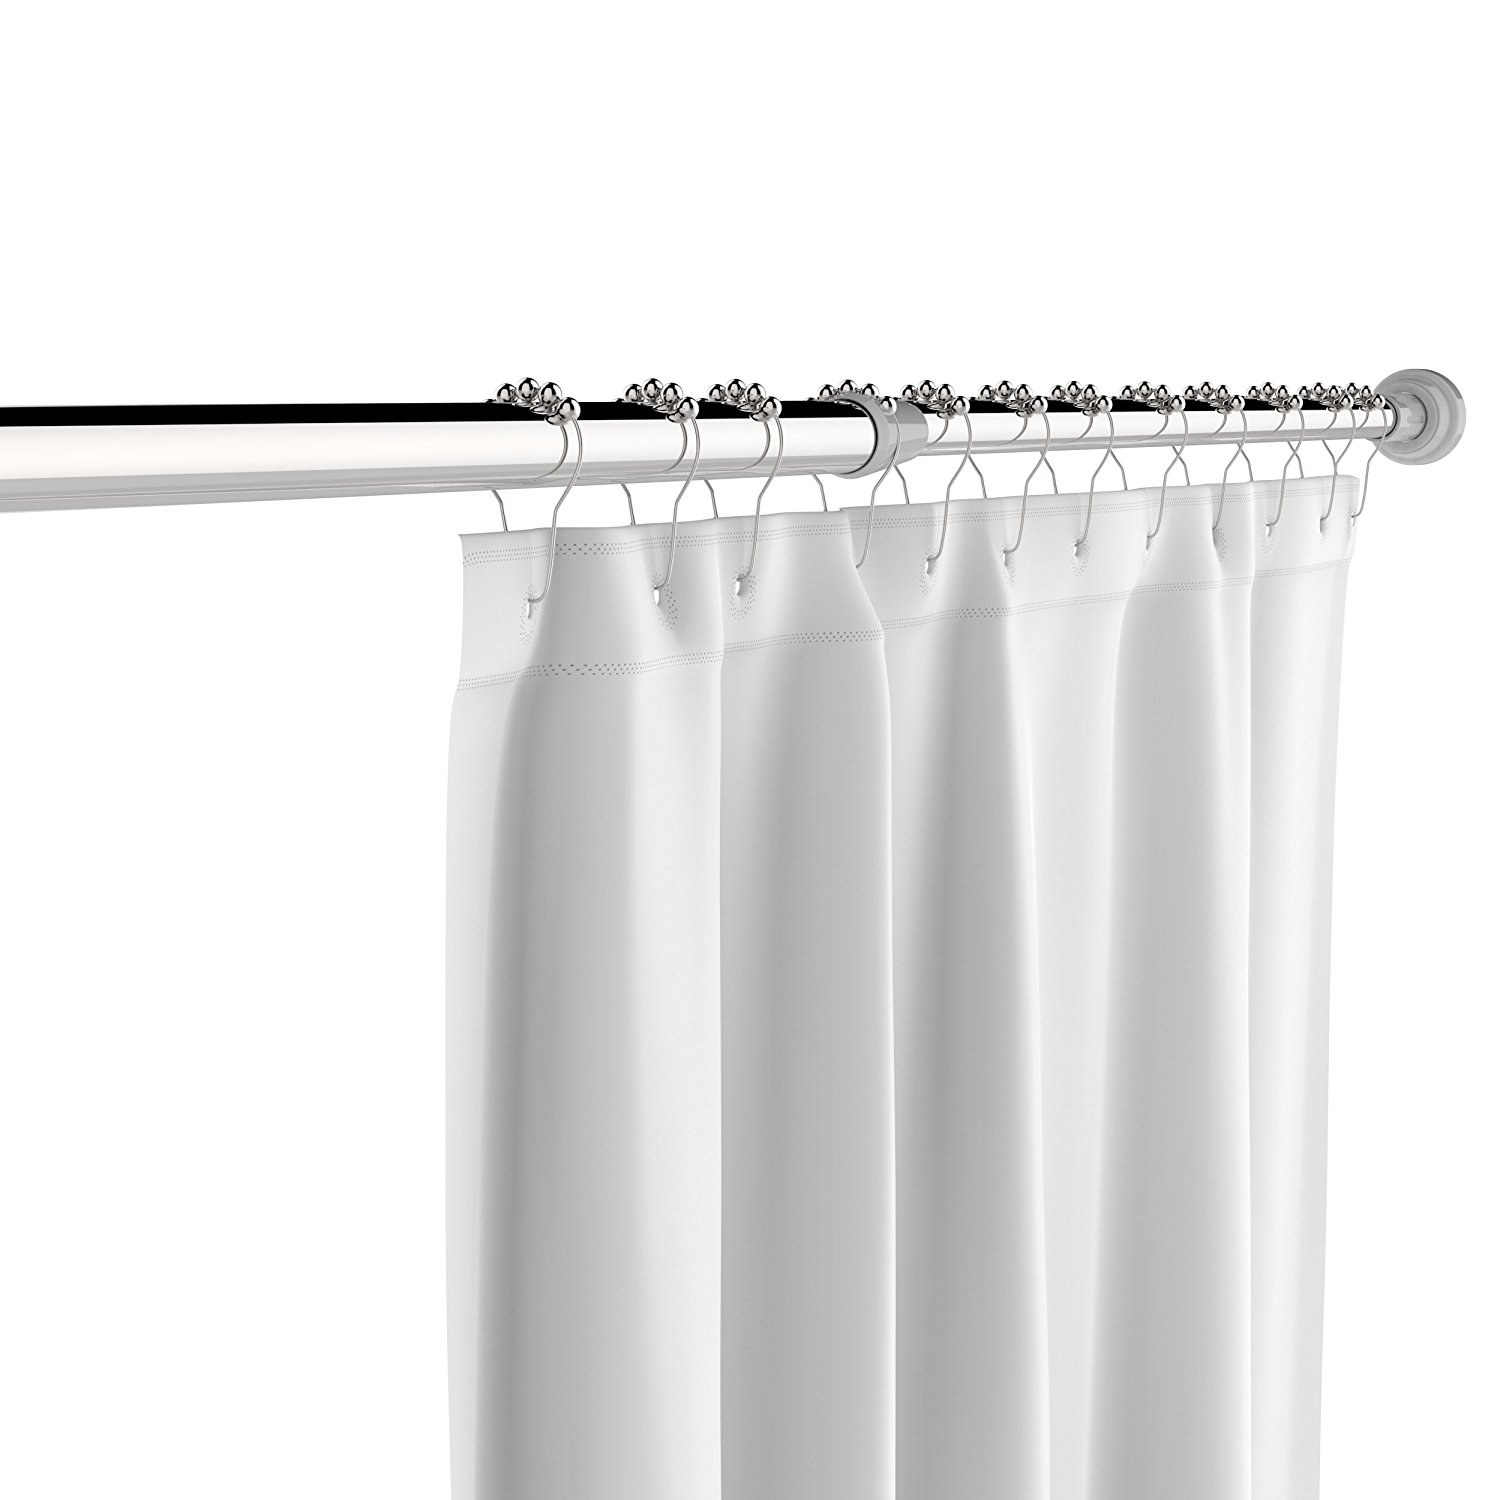 Get Quotations Stainless Steel Tension Shower Curtain Rod By The C H O Easily Adjusts Between 45 And 78